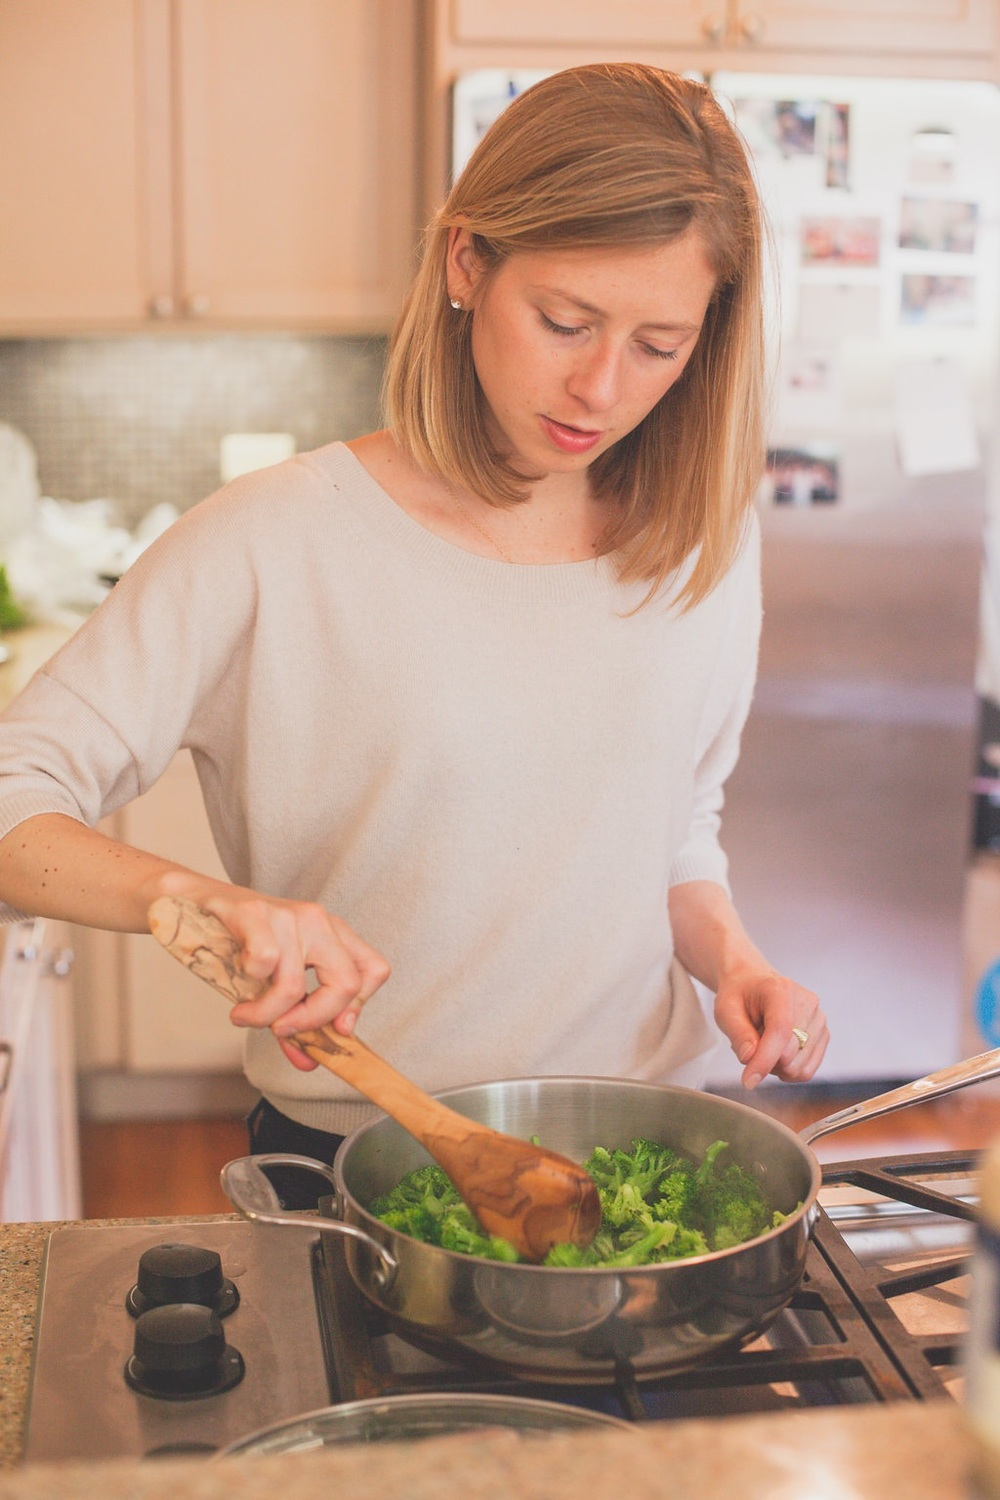 cooking broccoli candid.jpg